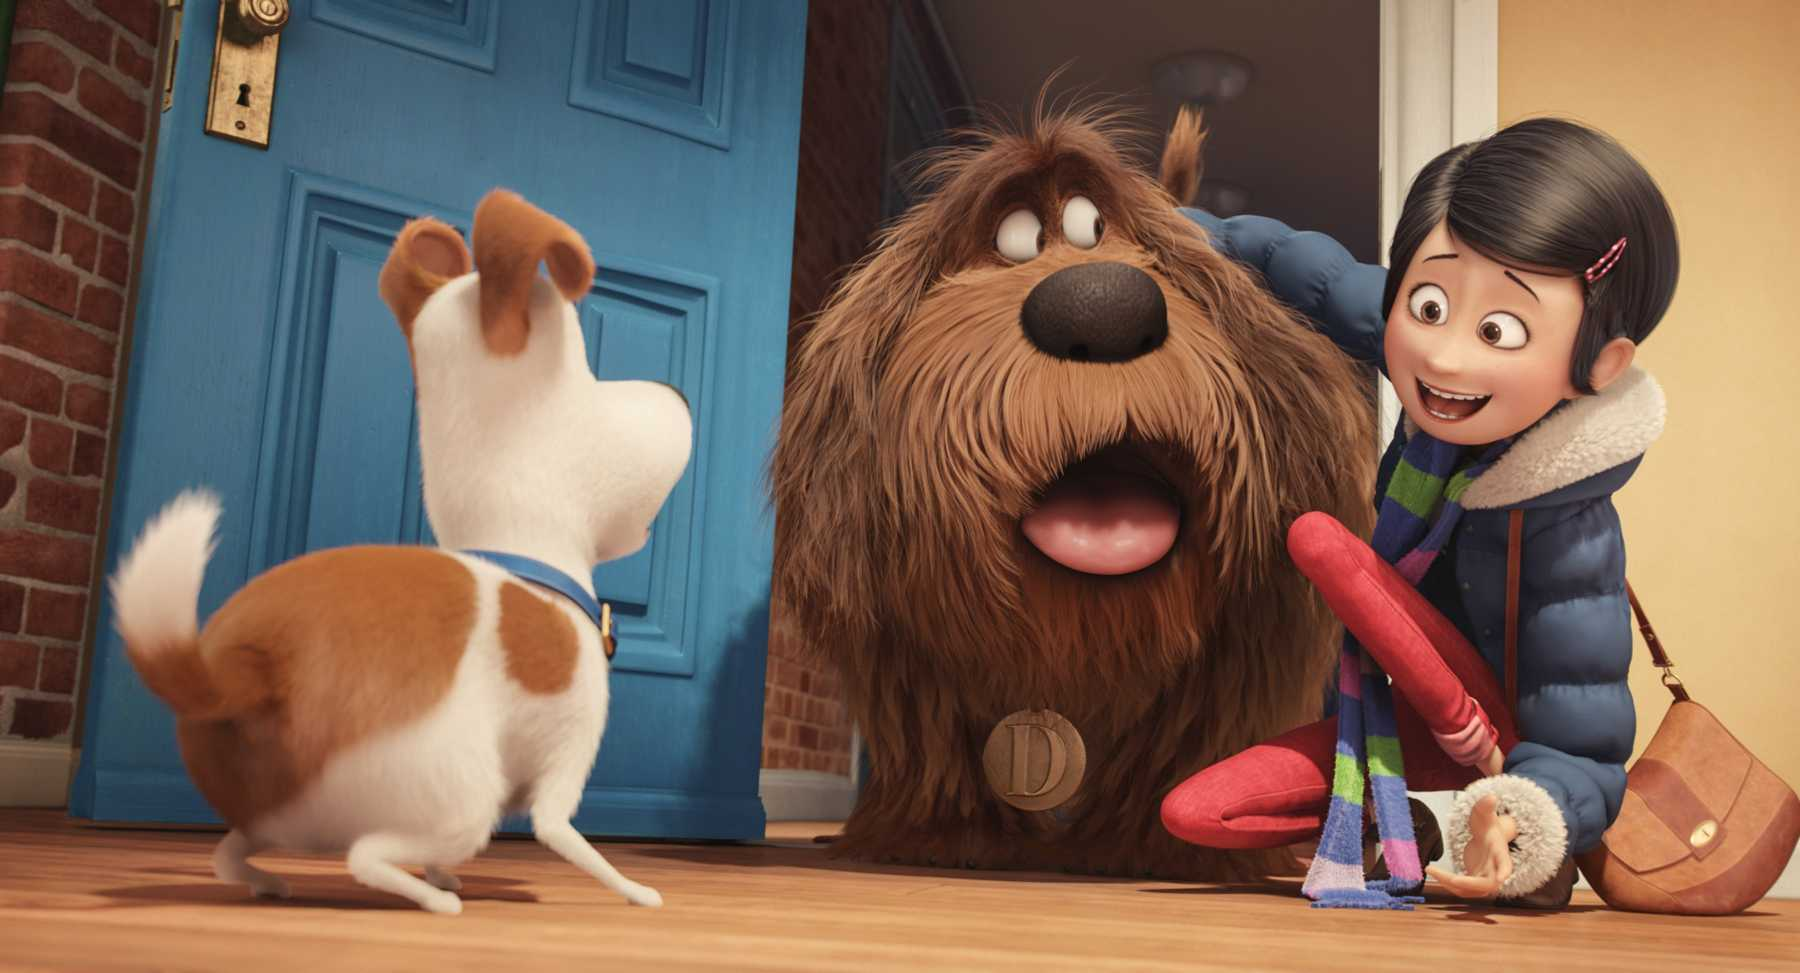 Loudinni Reviews: The Secret Life of Pets | The Secret Life of Pets